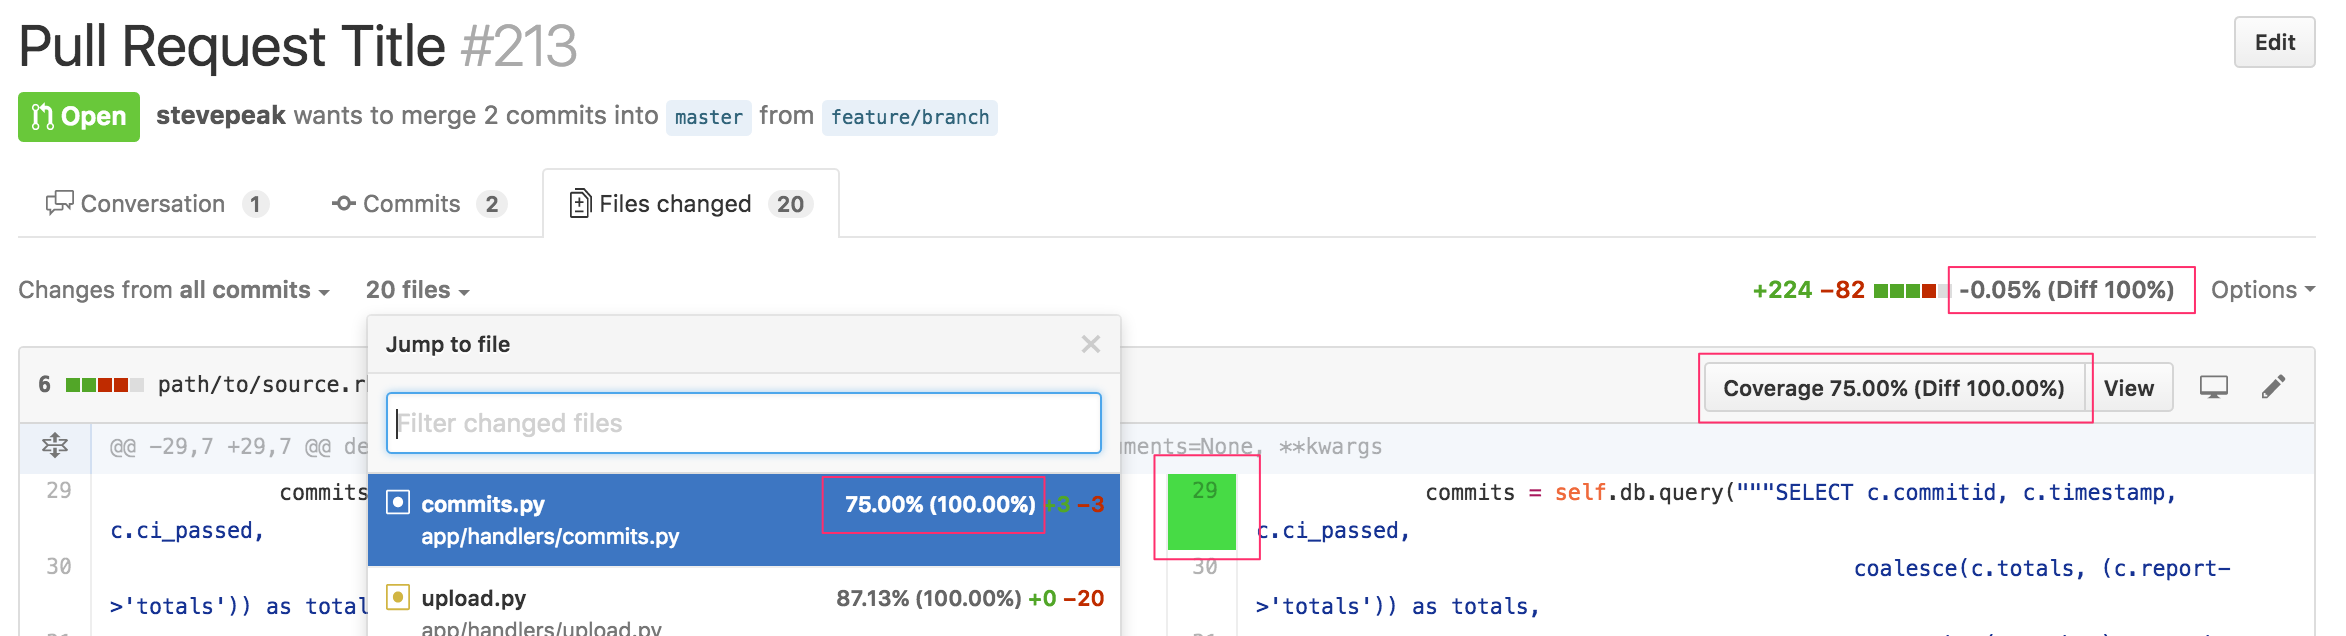 **Compare and Pull Request** add coverage and diff to (a) file list, (b) compare header, (c) file header. Highlight gutter background with coverage metrics.